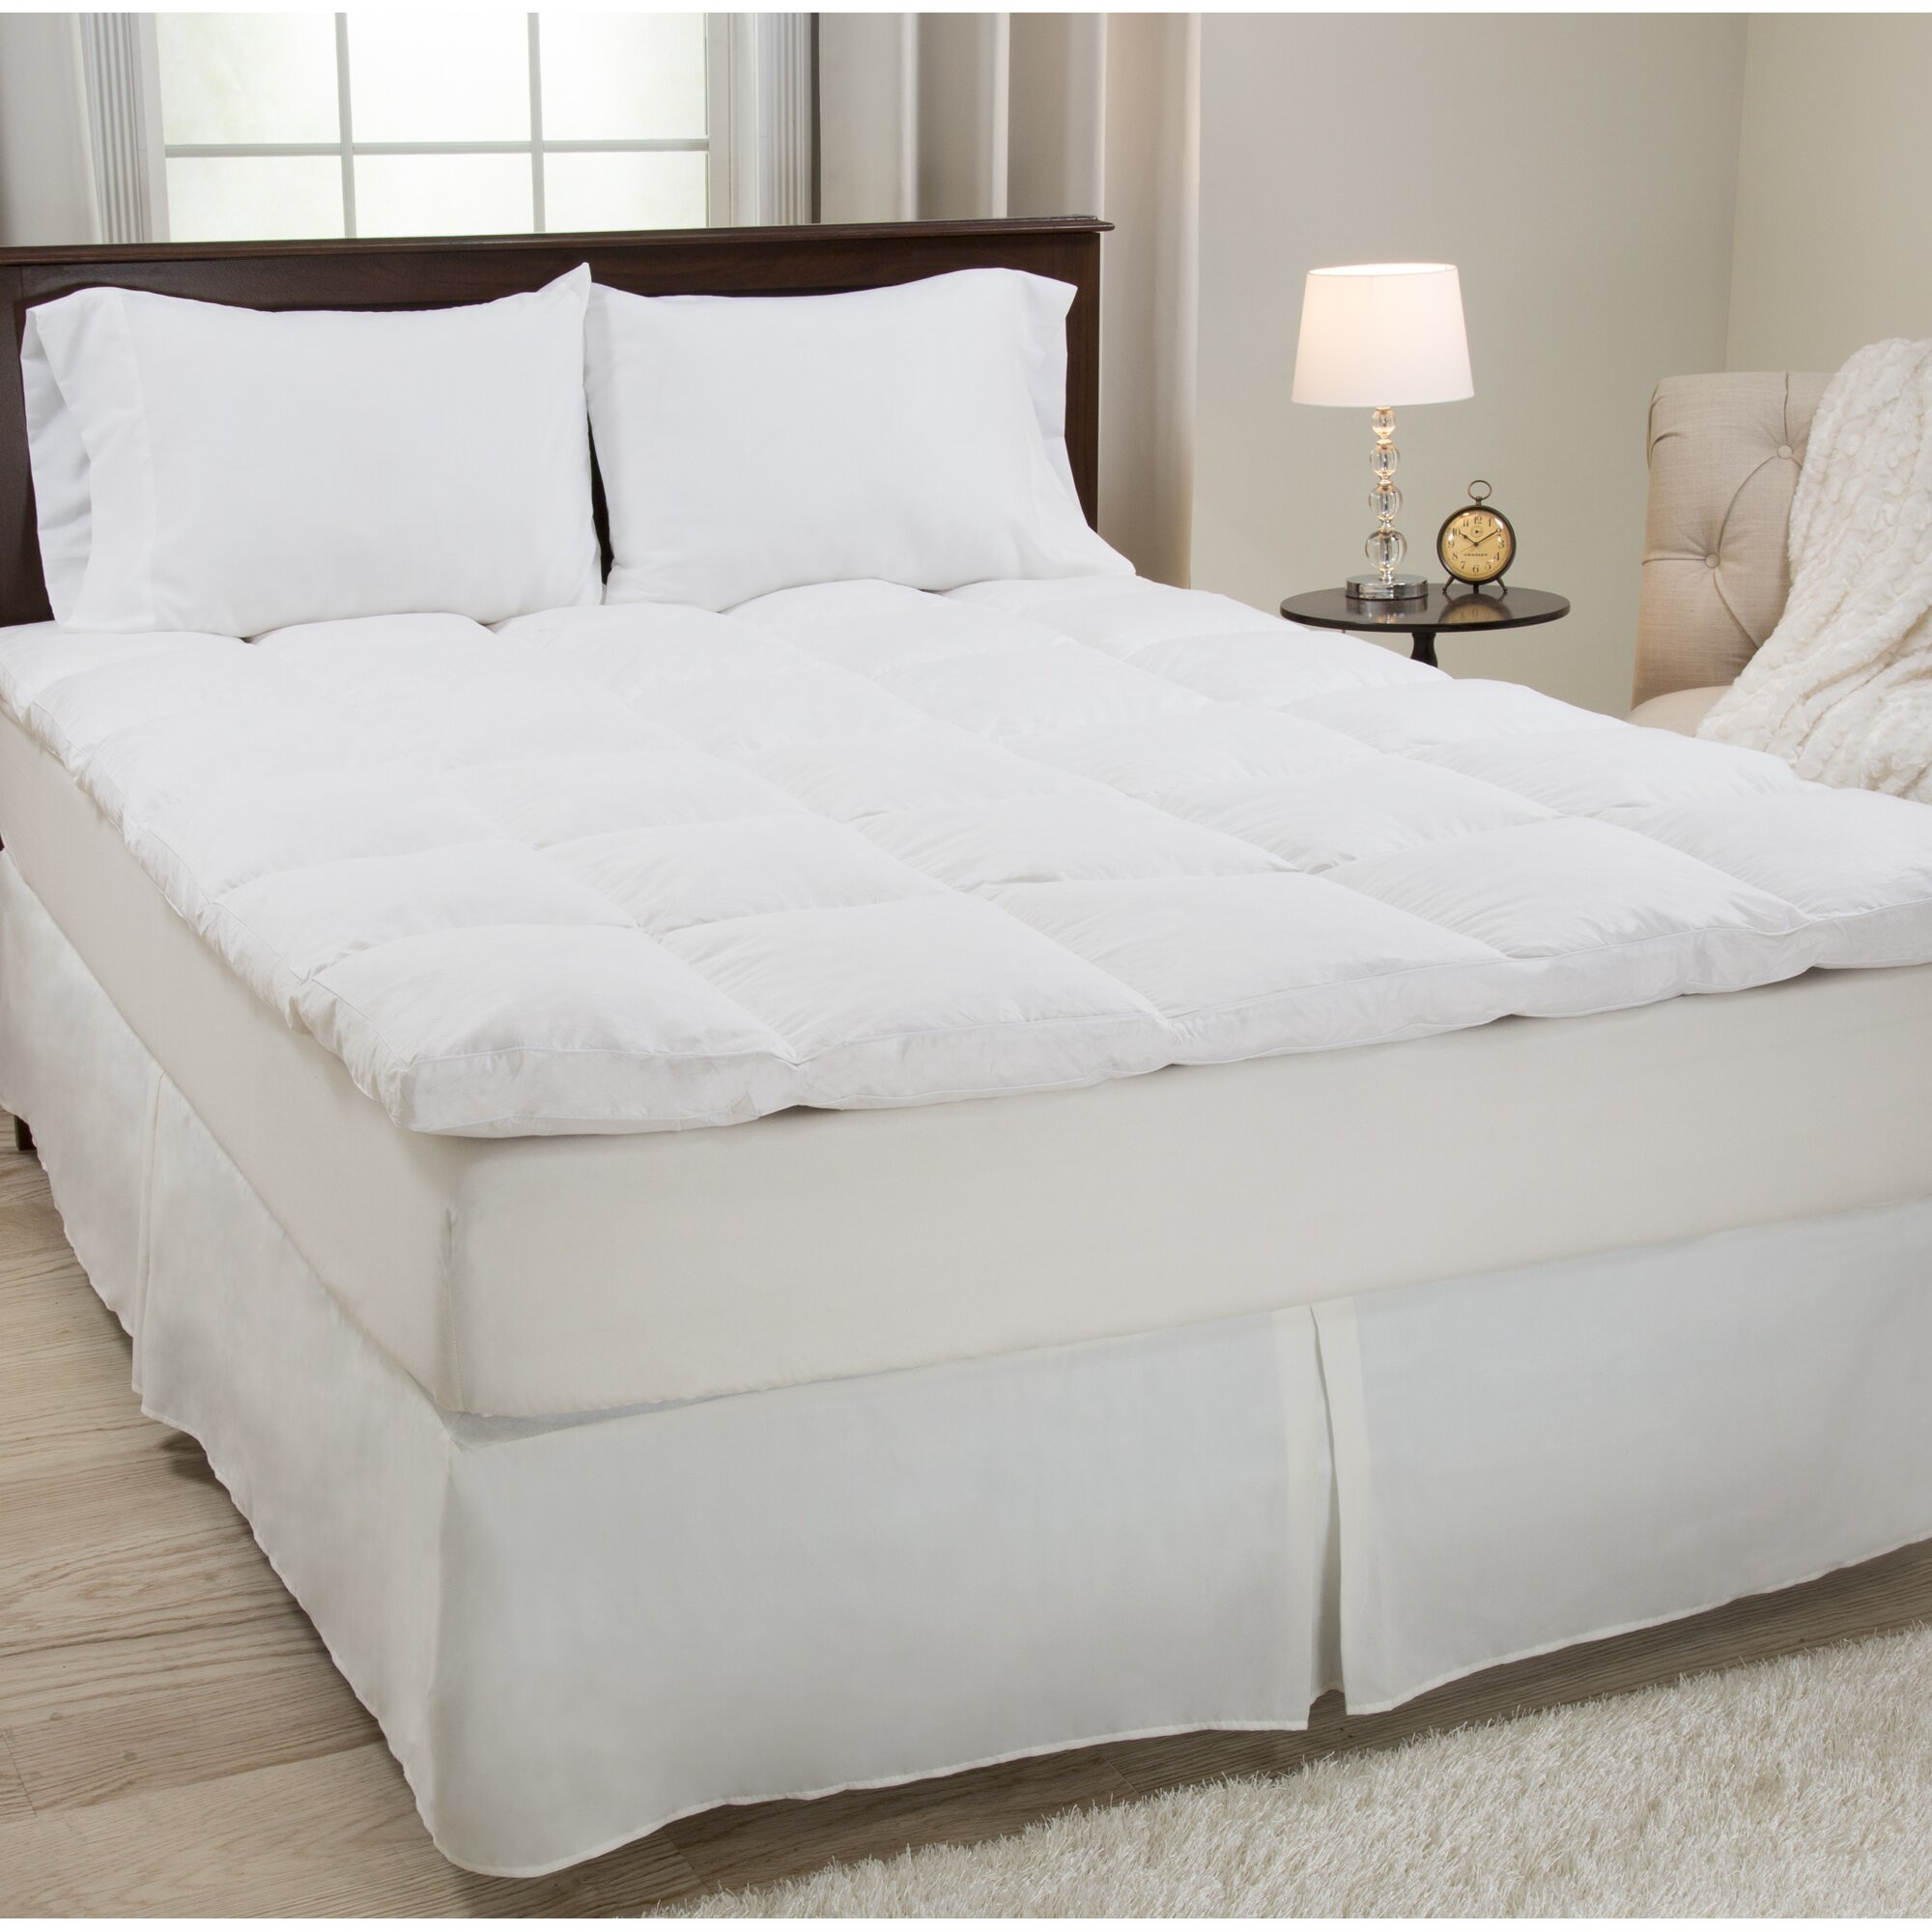 "PLYH 2"" Duck Feather Mattress Topper & Reviews"